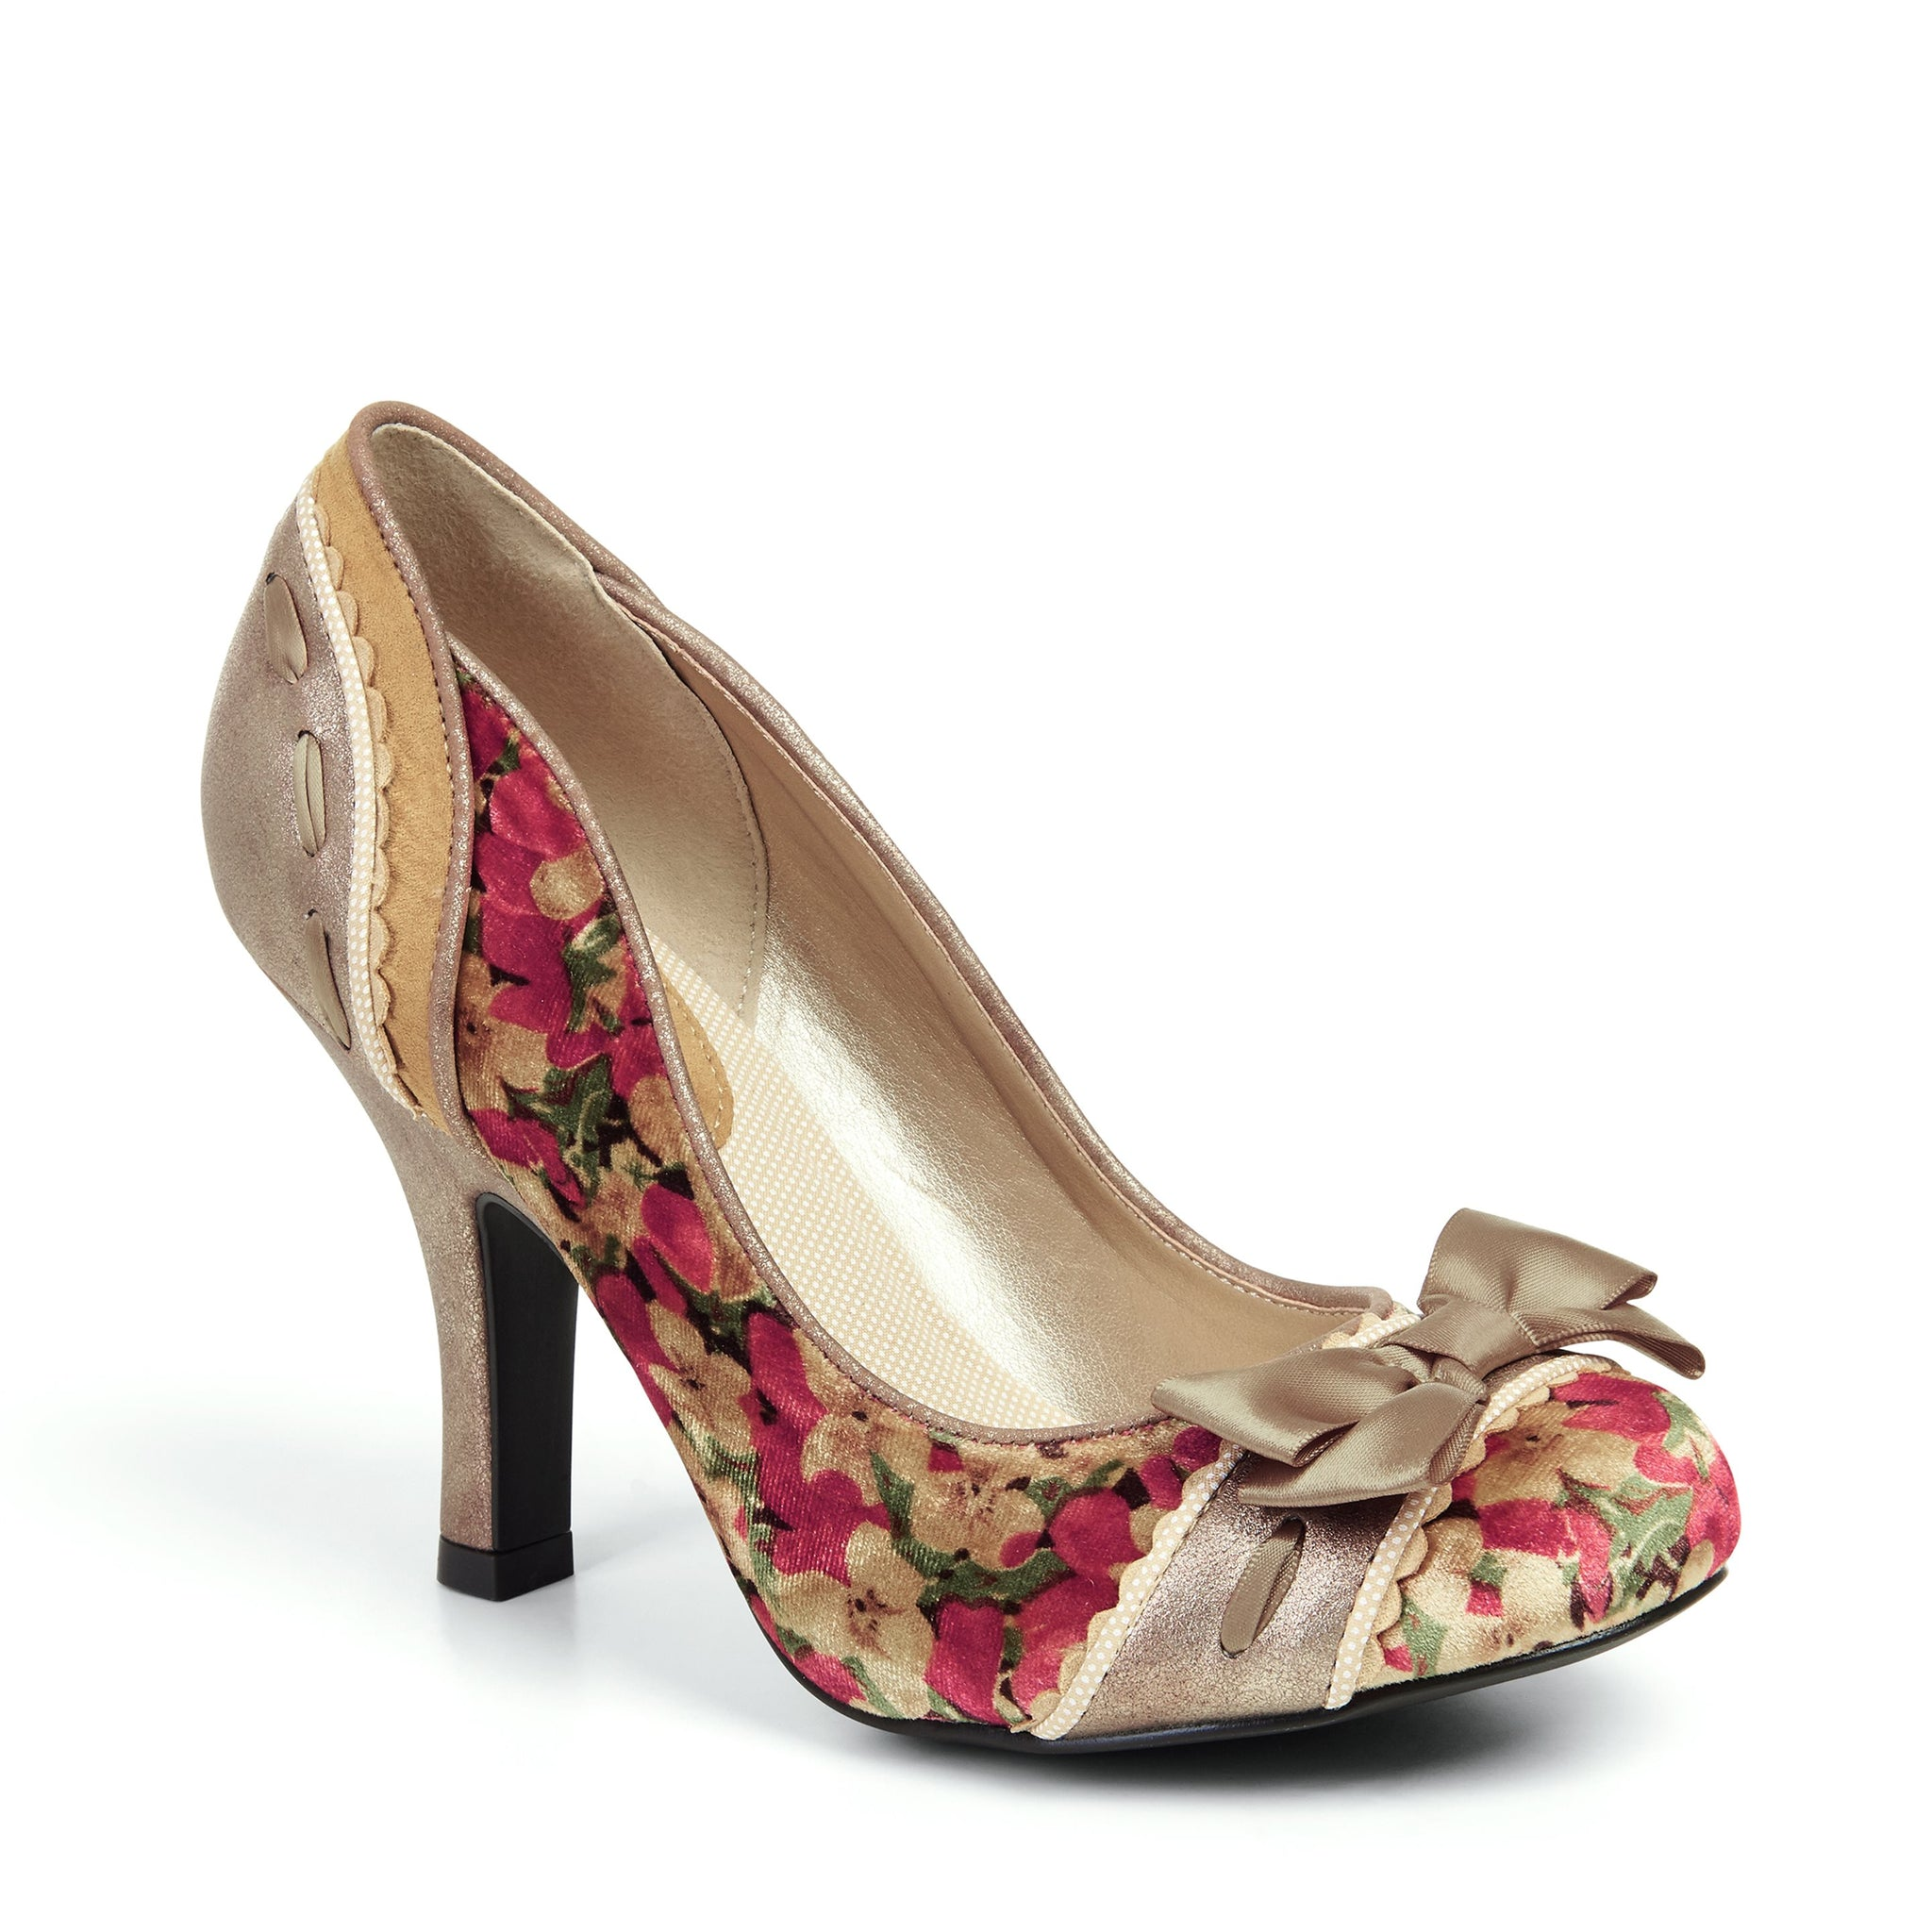 2d041ed747 Ruby Shoo Gold Multi Bow Front High Heel Court Shoes